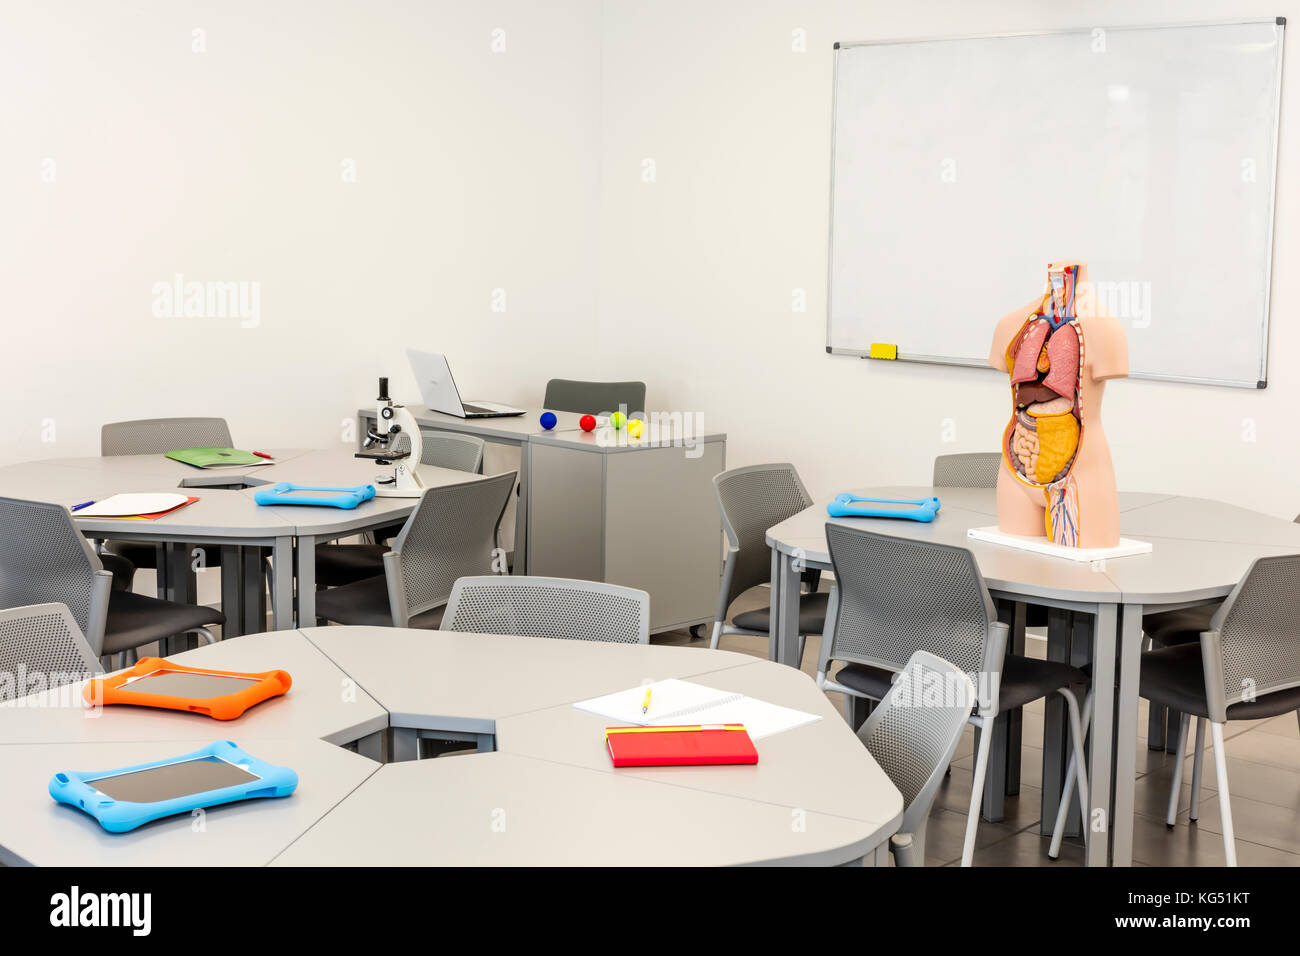 Modern classroom interior, with round tables. Anatomy model and the white board in the background - Stock Image